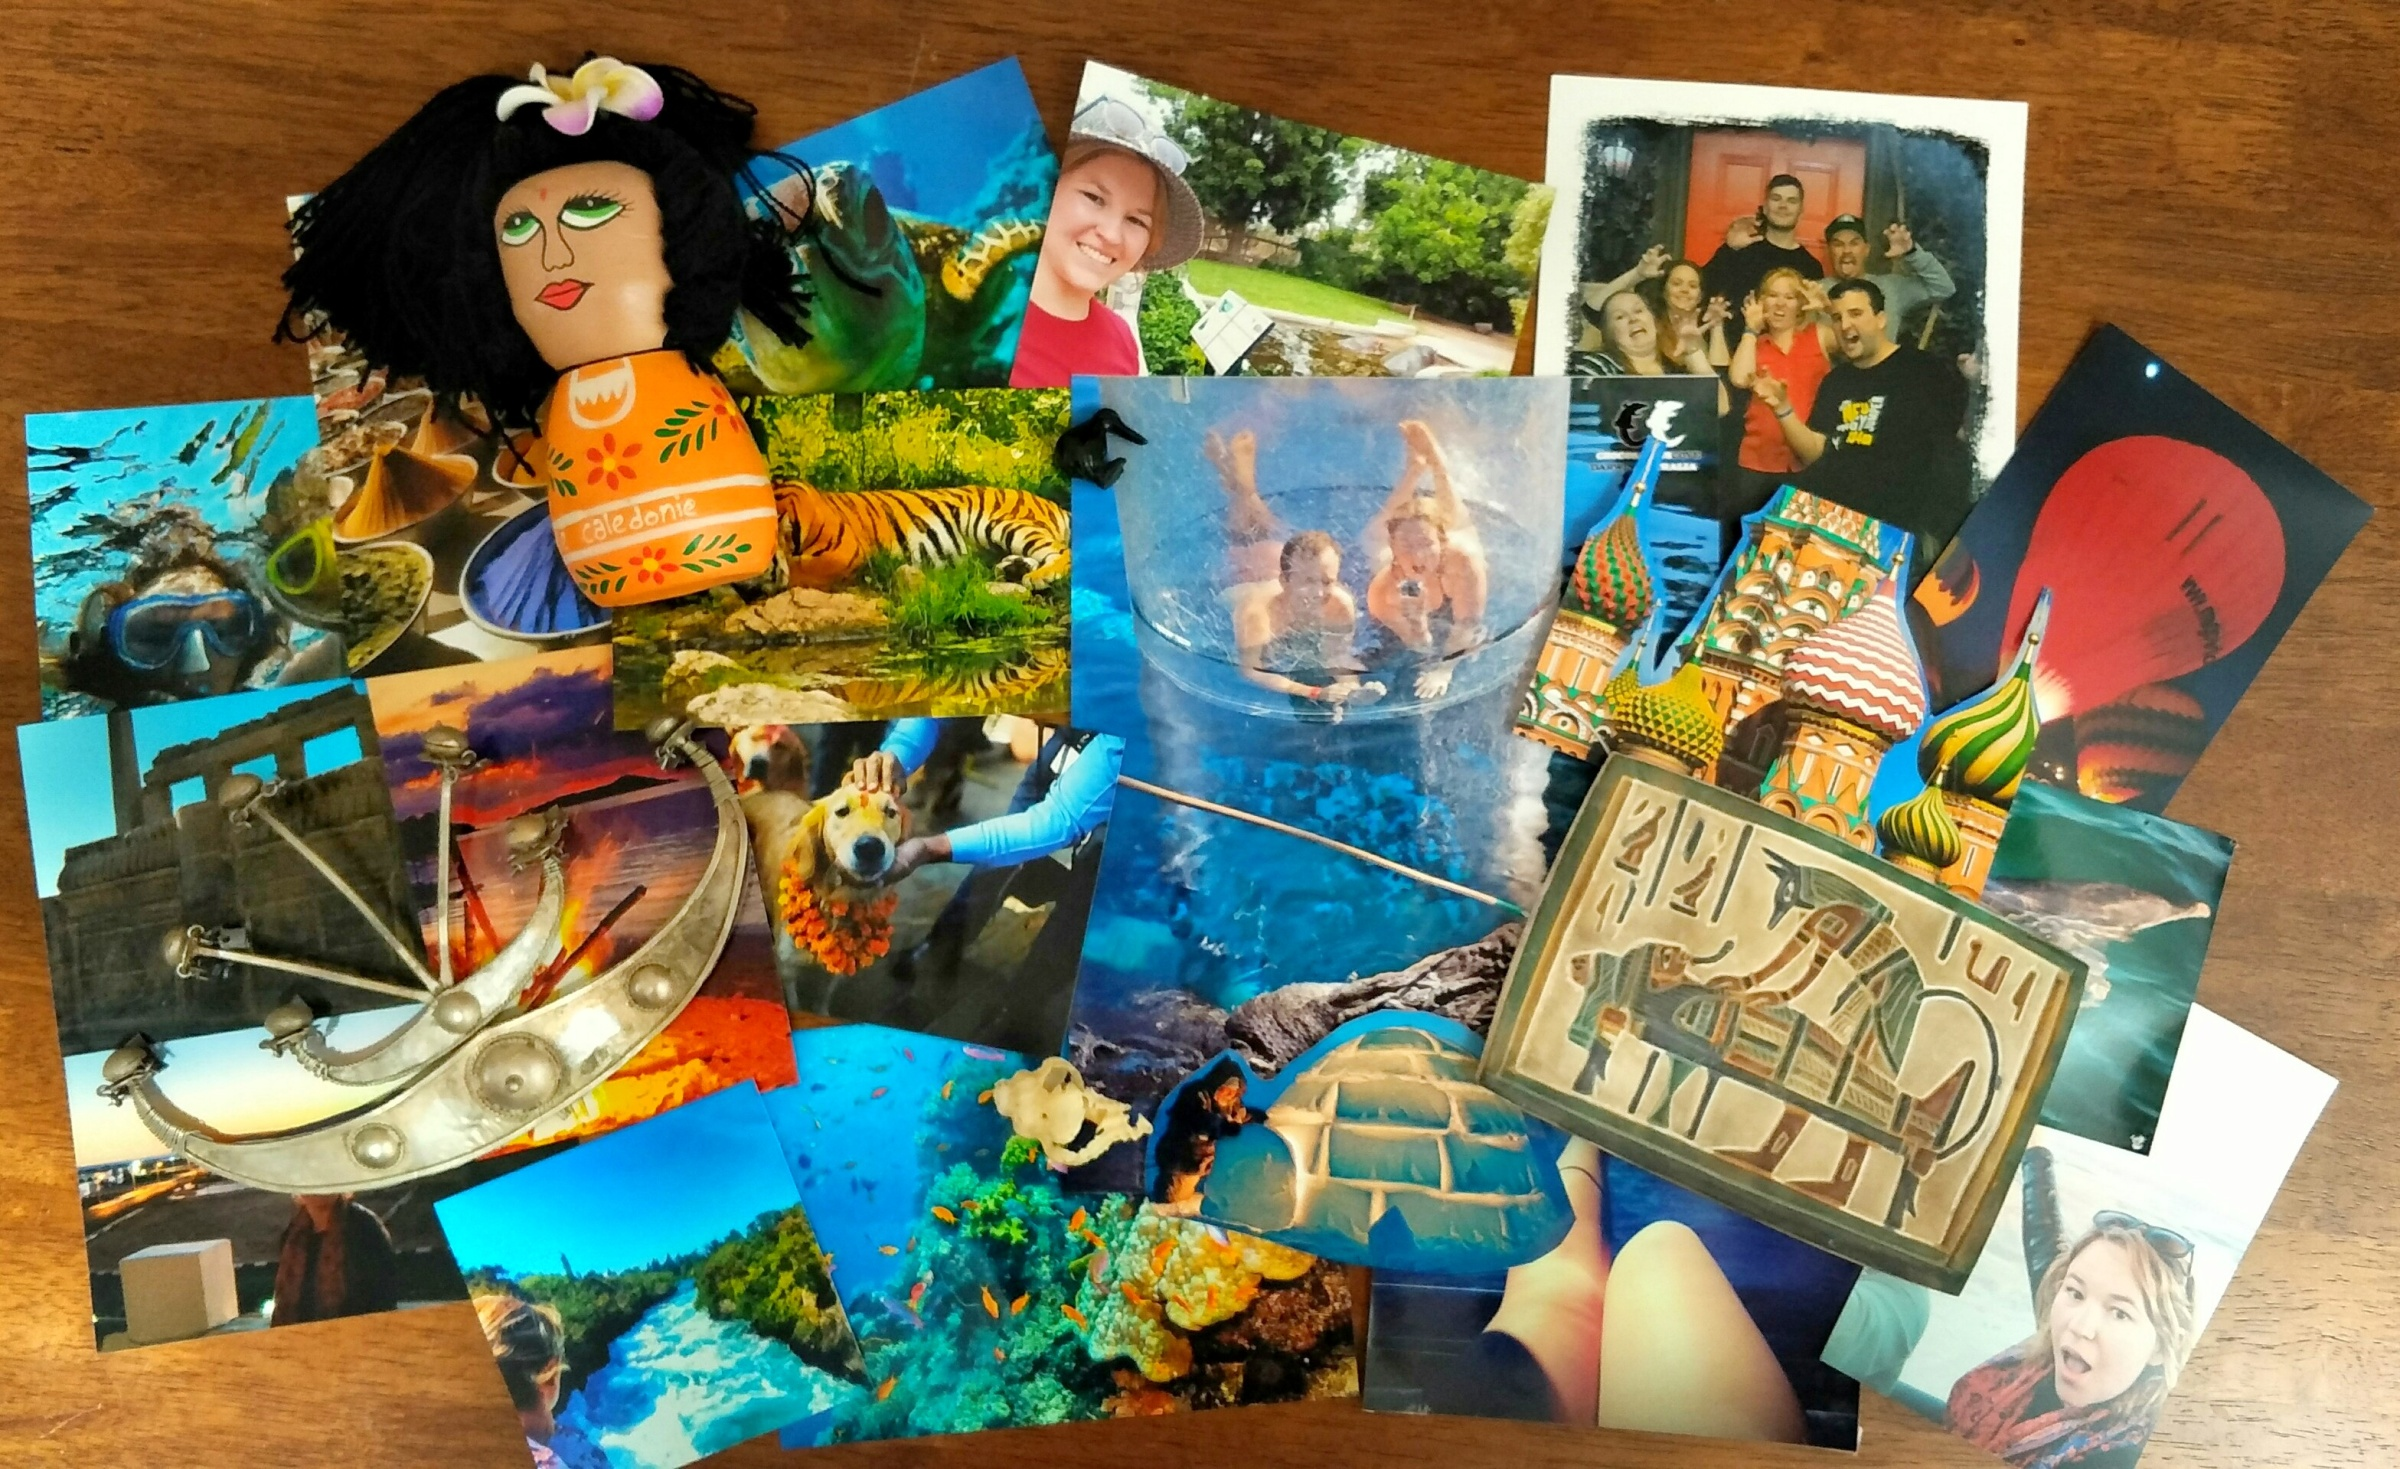 A collection of photographs and souvenirs